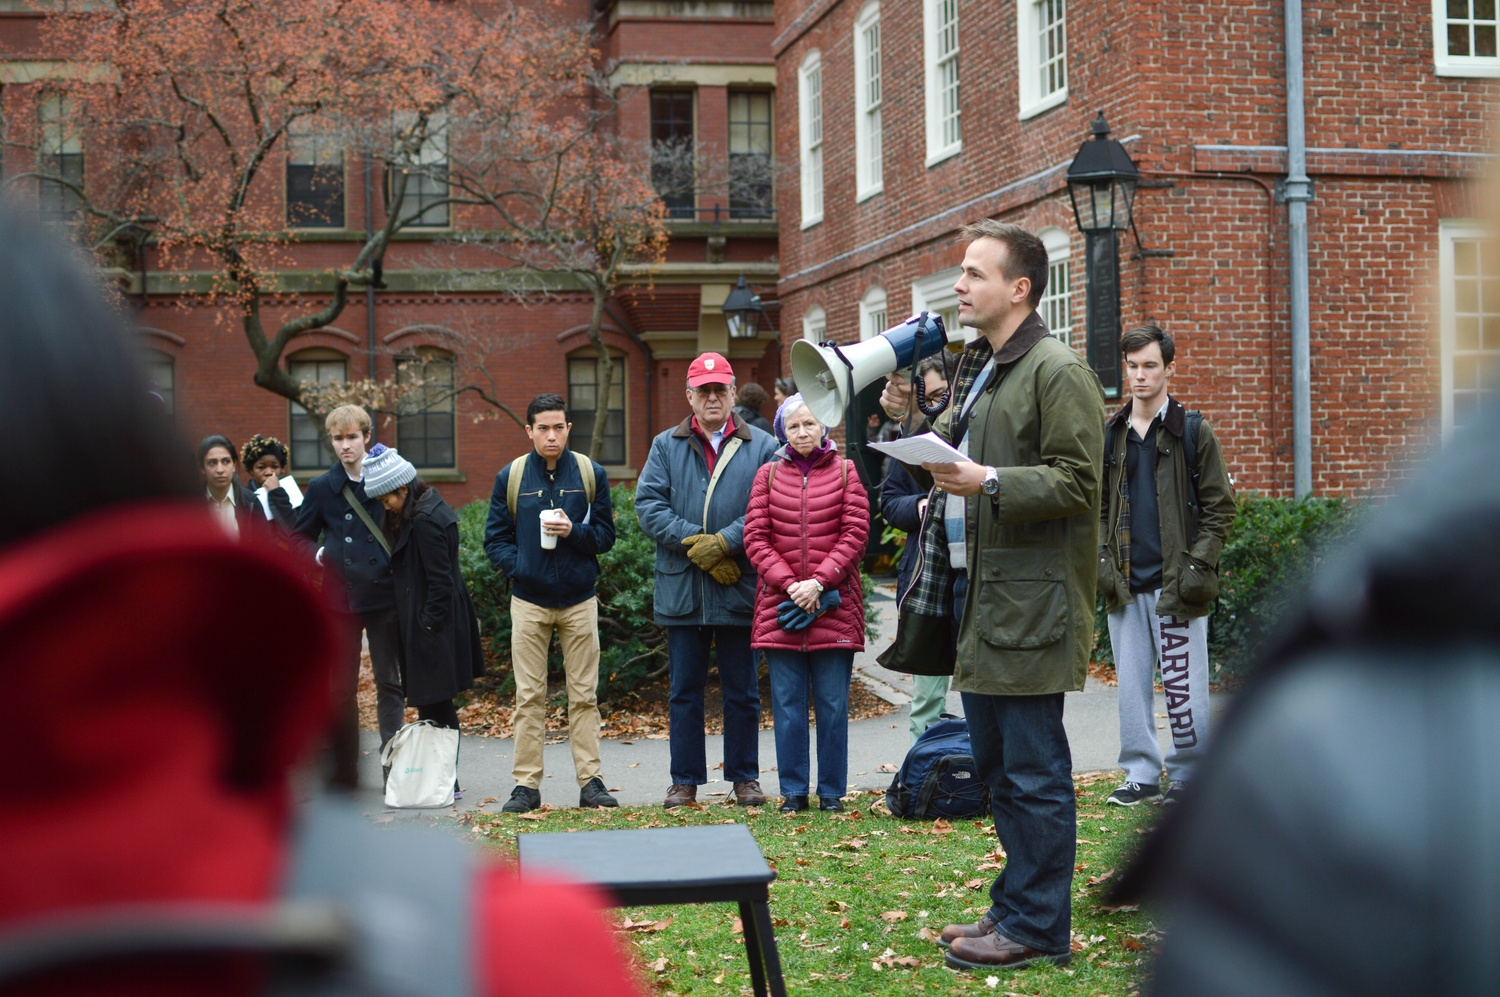 'I certainly care about this issue,' said resident dean of Mather House Luke Leafgren at a 2015 protest against sexual assault. He continued, 'and I do see many other administrators...who feel as strongly as I do about the need to make this campus safer.'